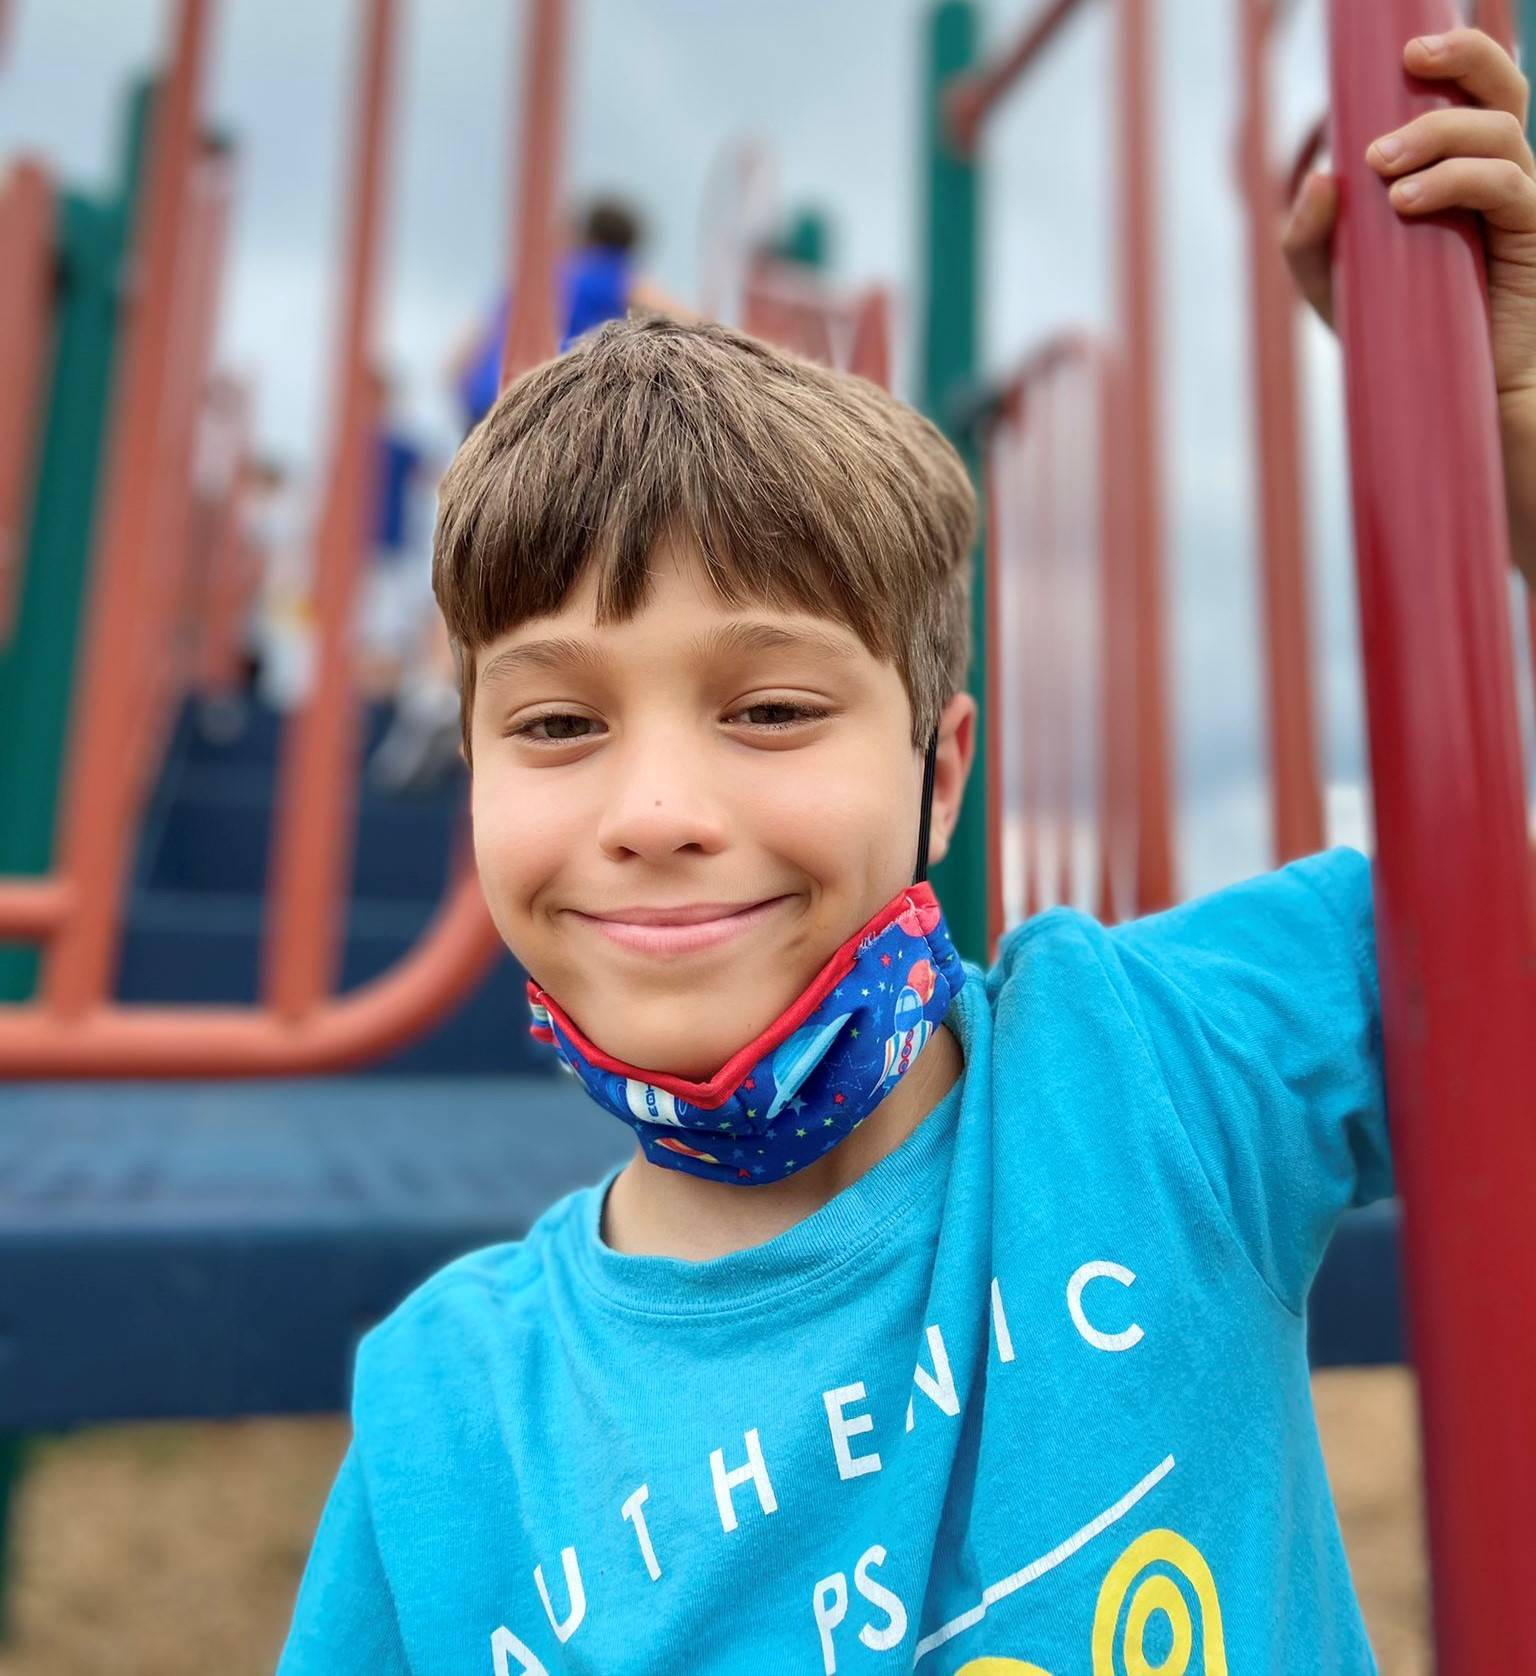 Photo 19:  Munson student on the school playground smiling for the camera